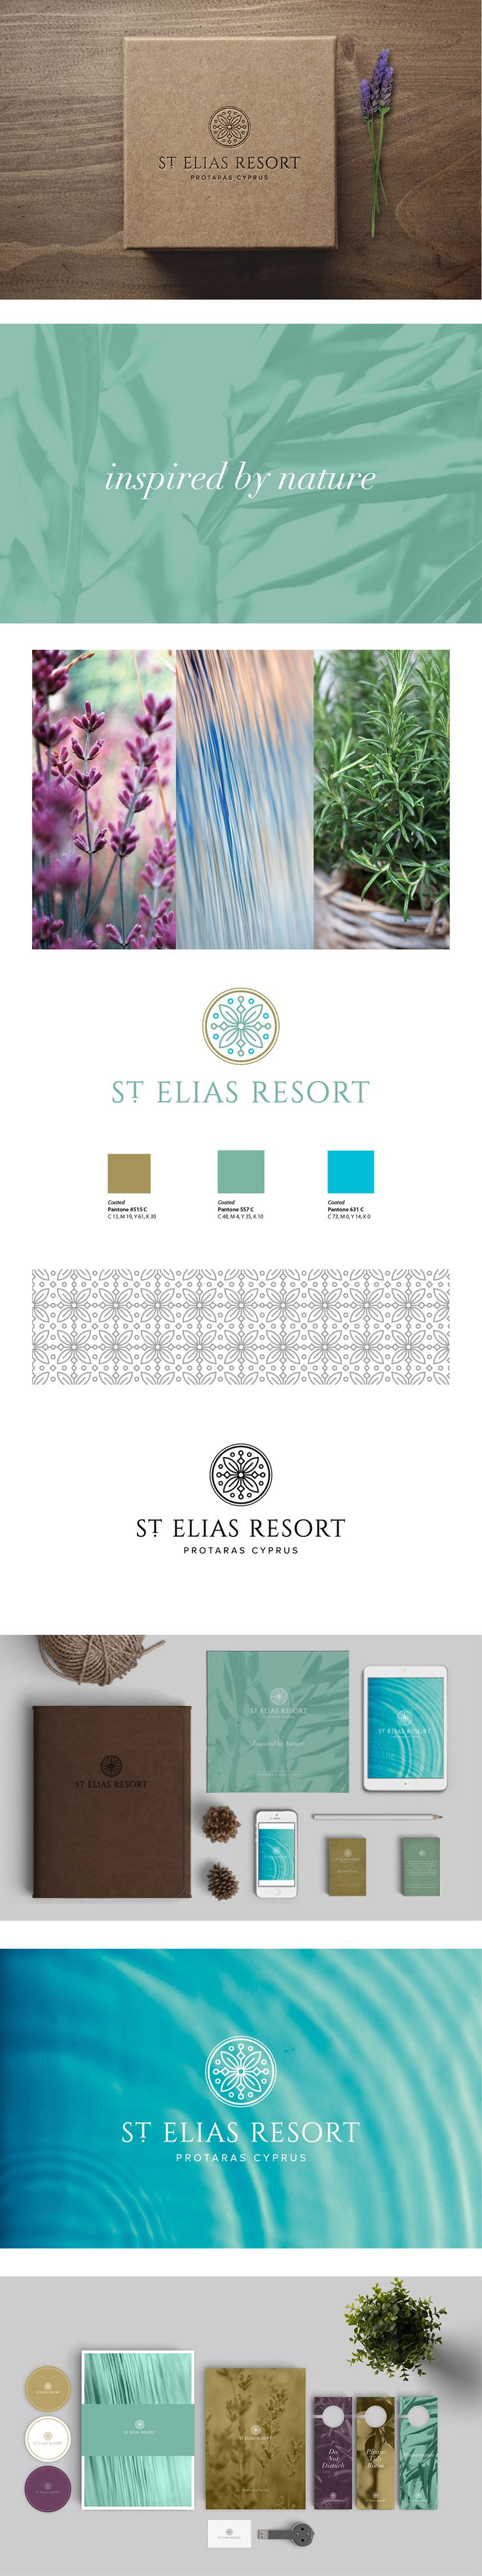 St. Elias ResortLouis Hotels is the largest group of hotels in Cyprus, with 12 properties in Cyprus and 9 in Greece. After the complete renovation and expansion of its most popular holiday resort in Protaras, Cyprus, Polydorou Design undertook the rebran…